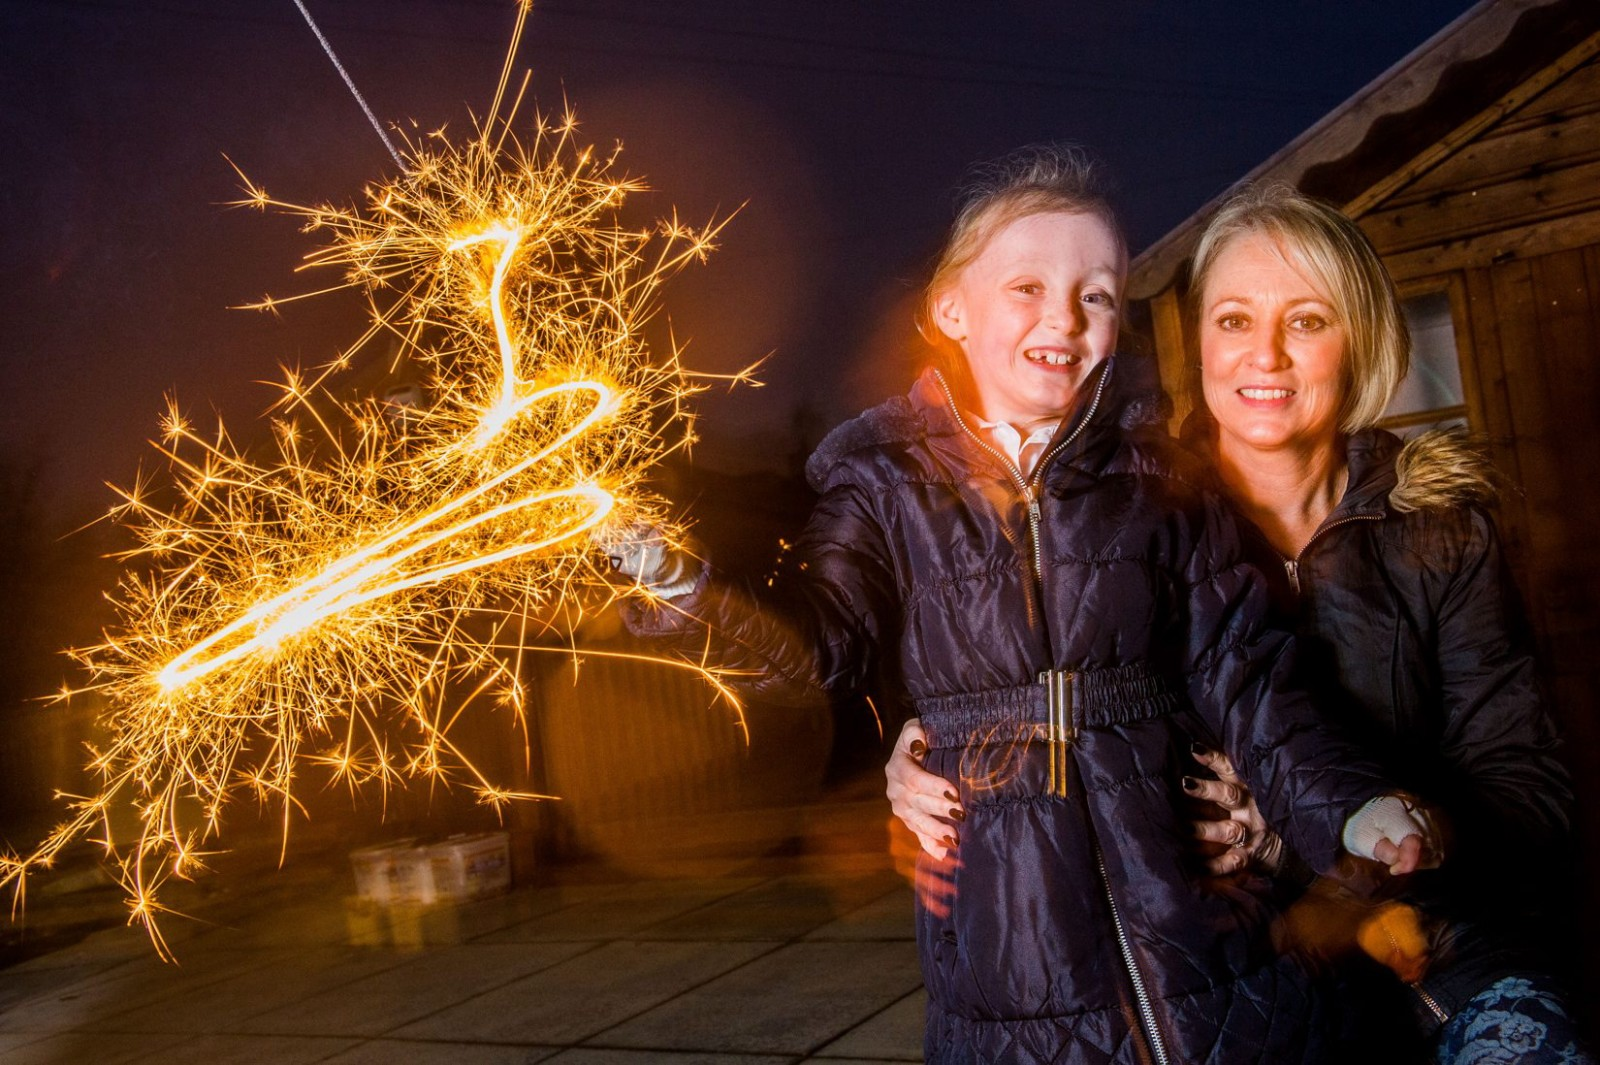 Little girl will celebrate being able to walk by DANCING on Bonfire Night